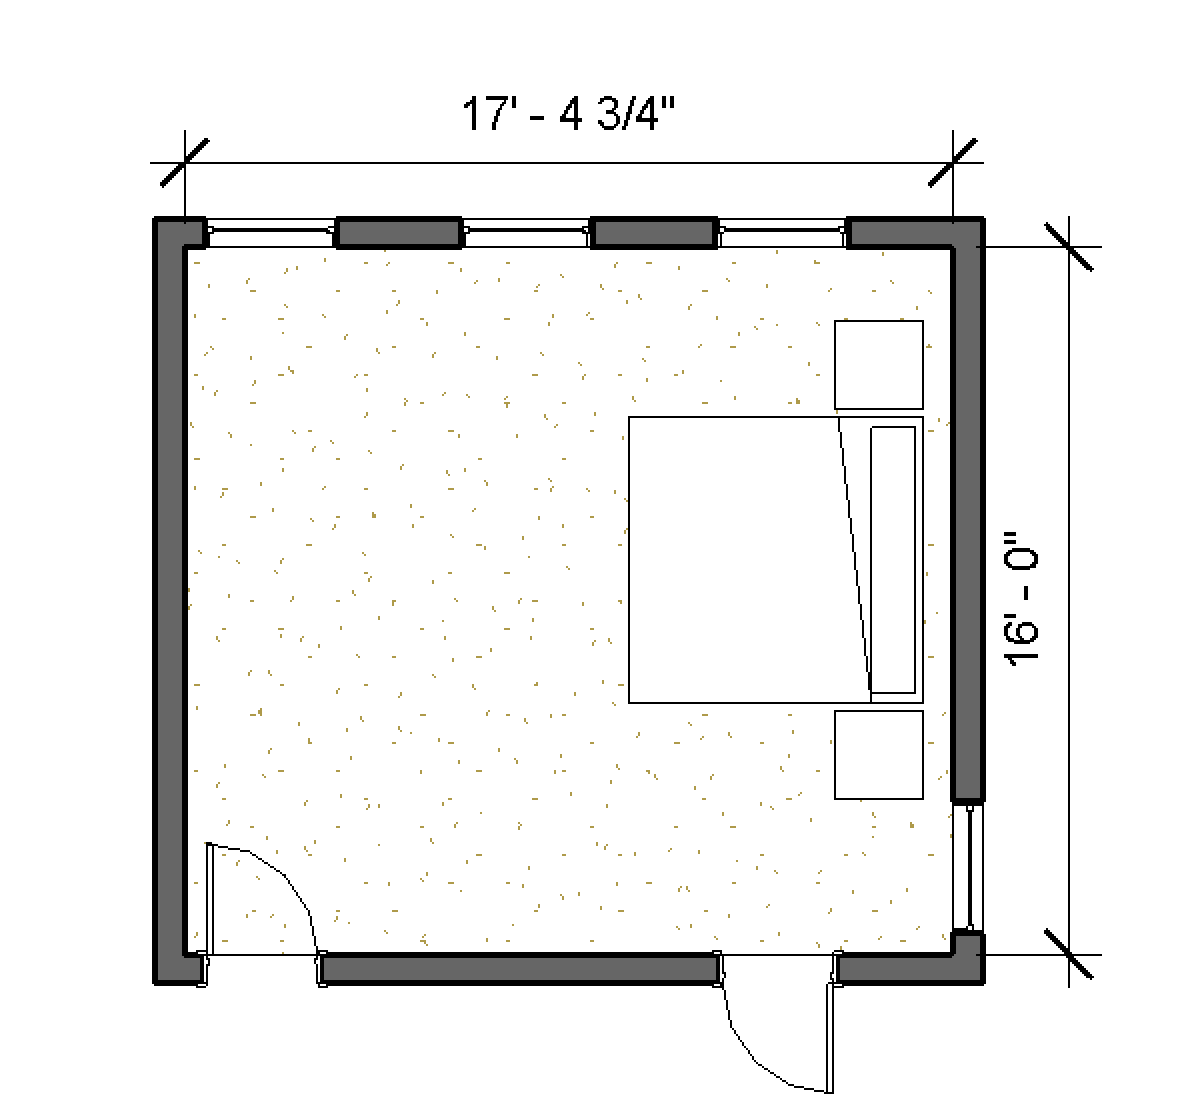 Size of the master bedroom